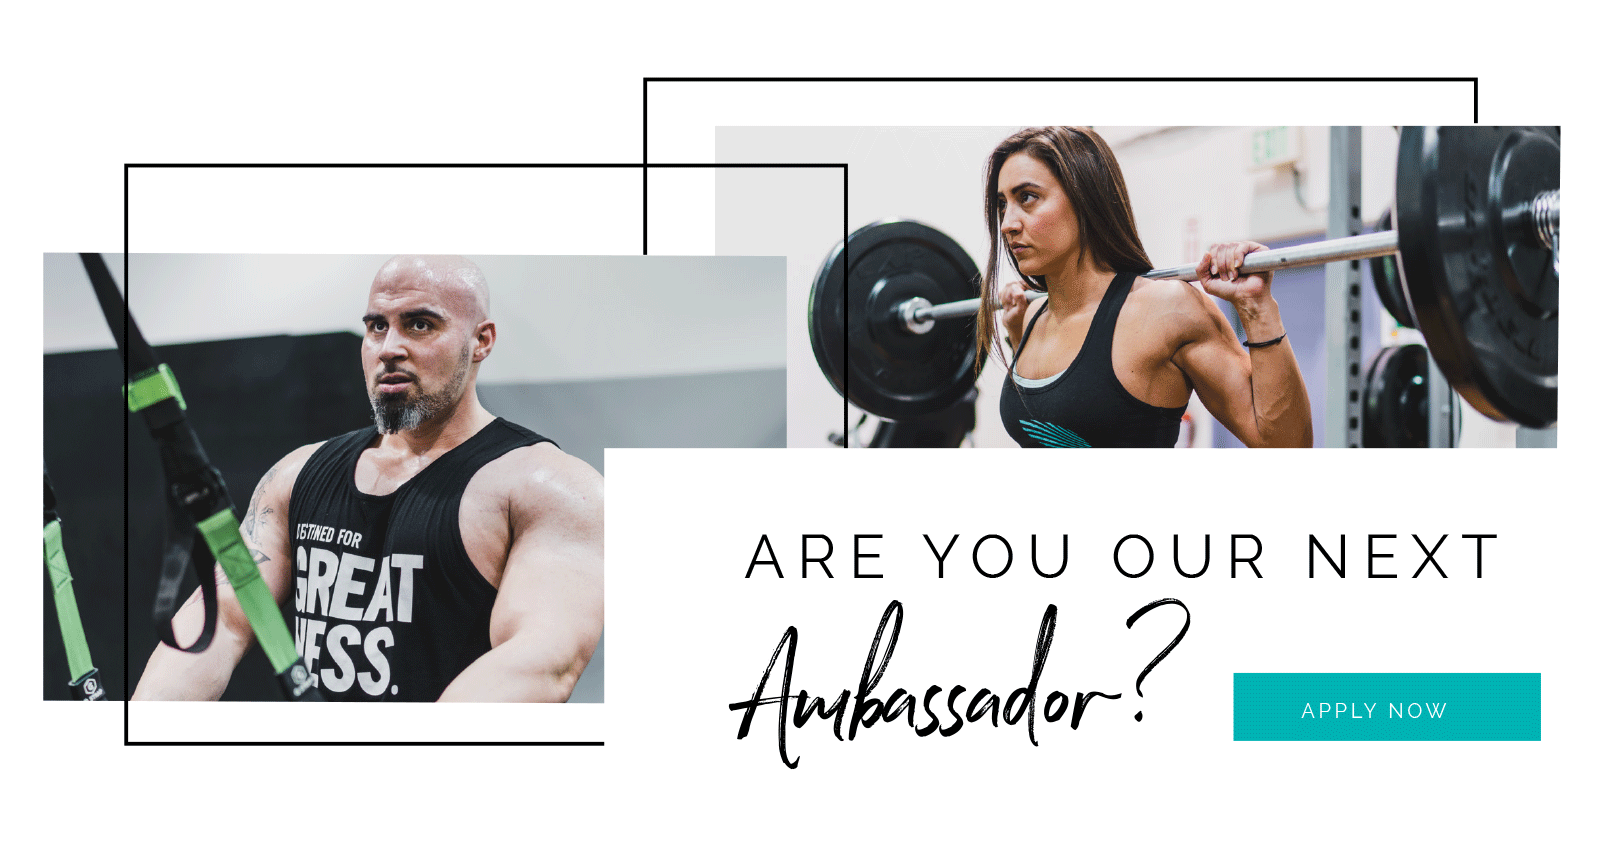 Ambassador Search - Apply Now